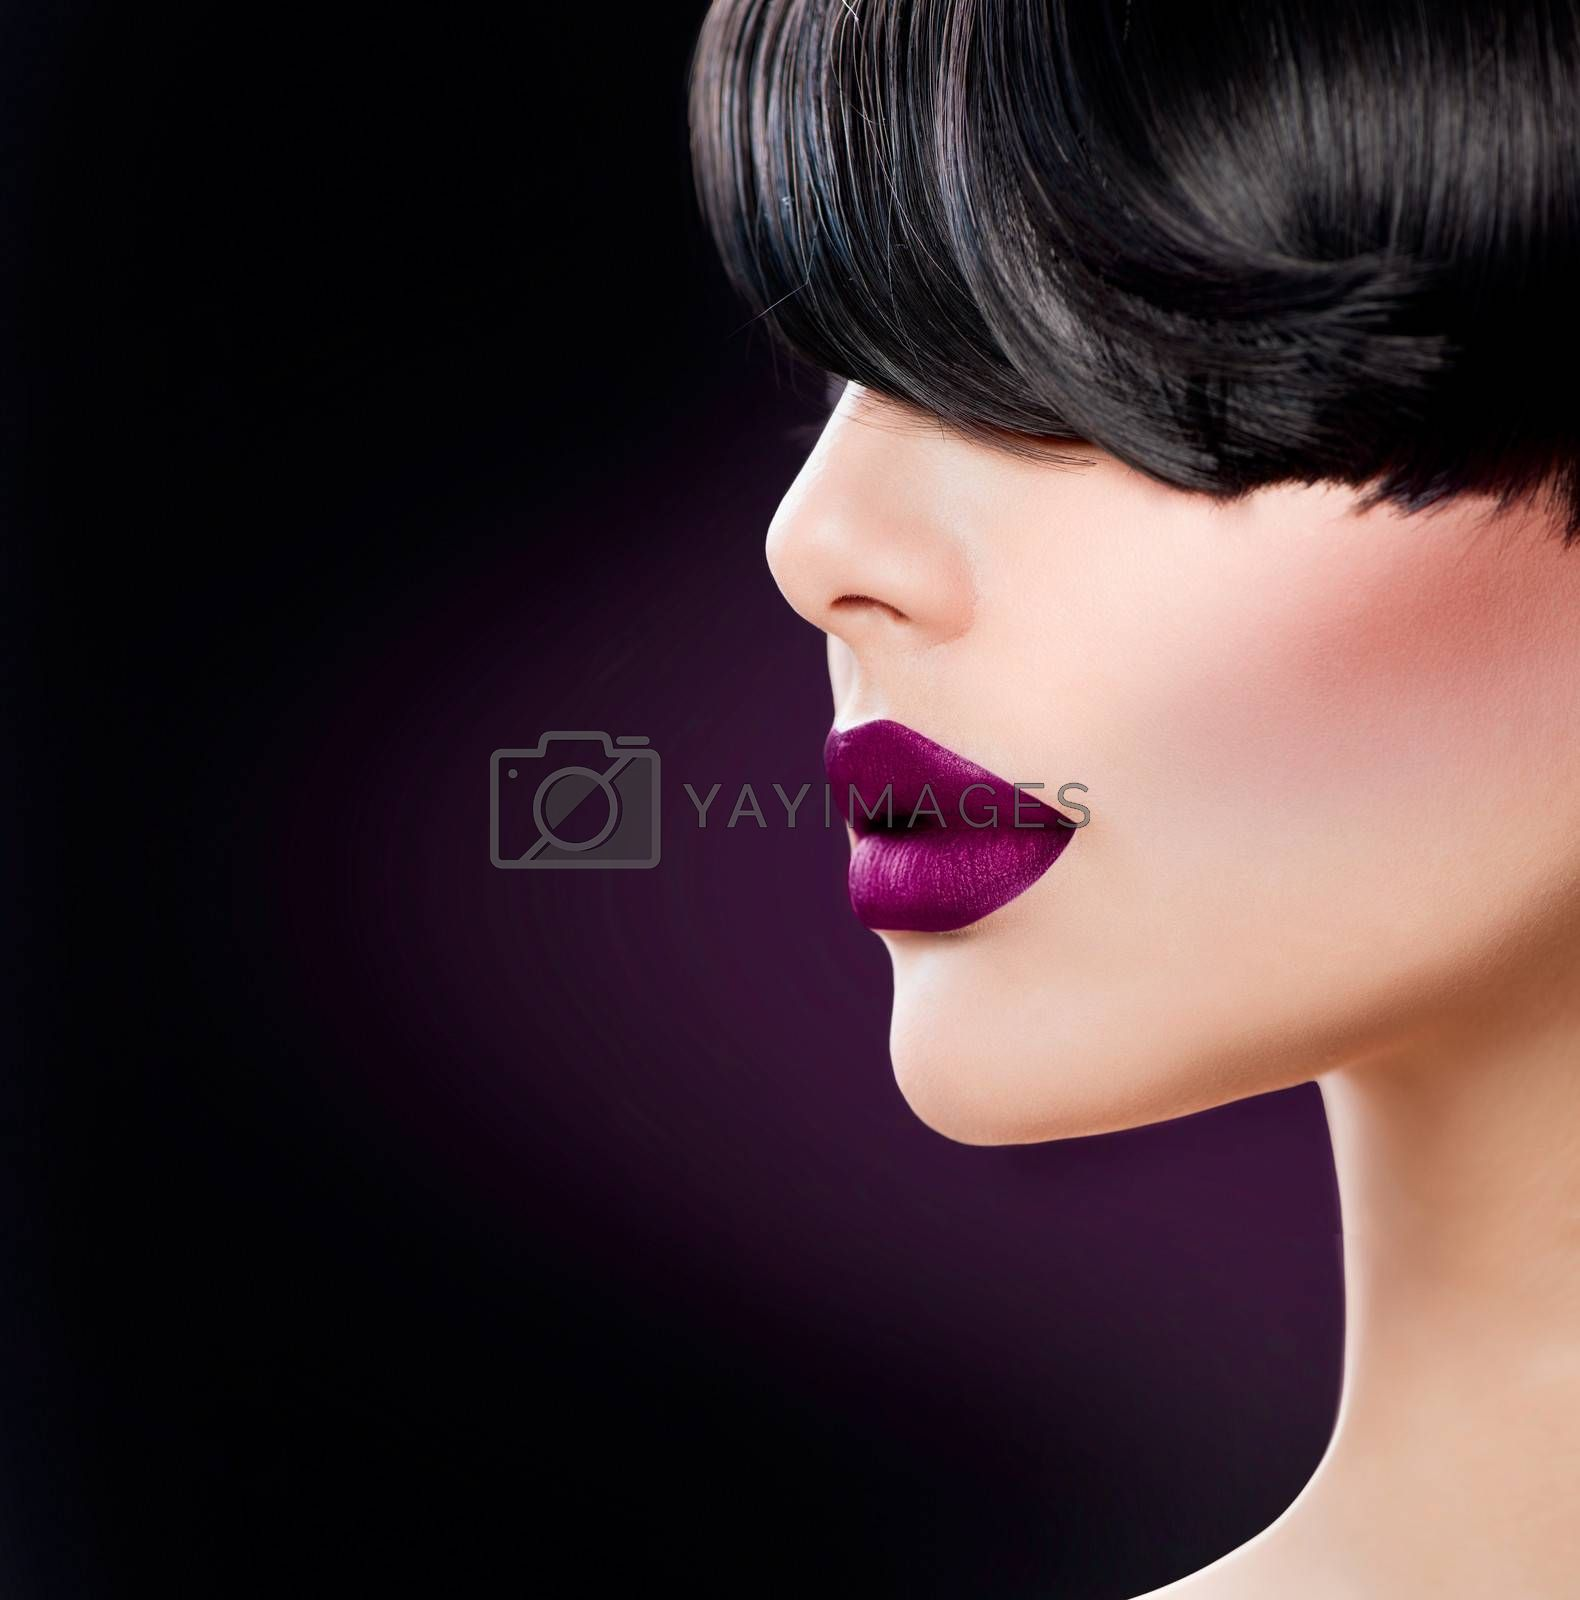 Beauty Woman Face close up with Beautiful Dark Violet Lips